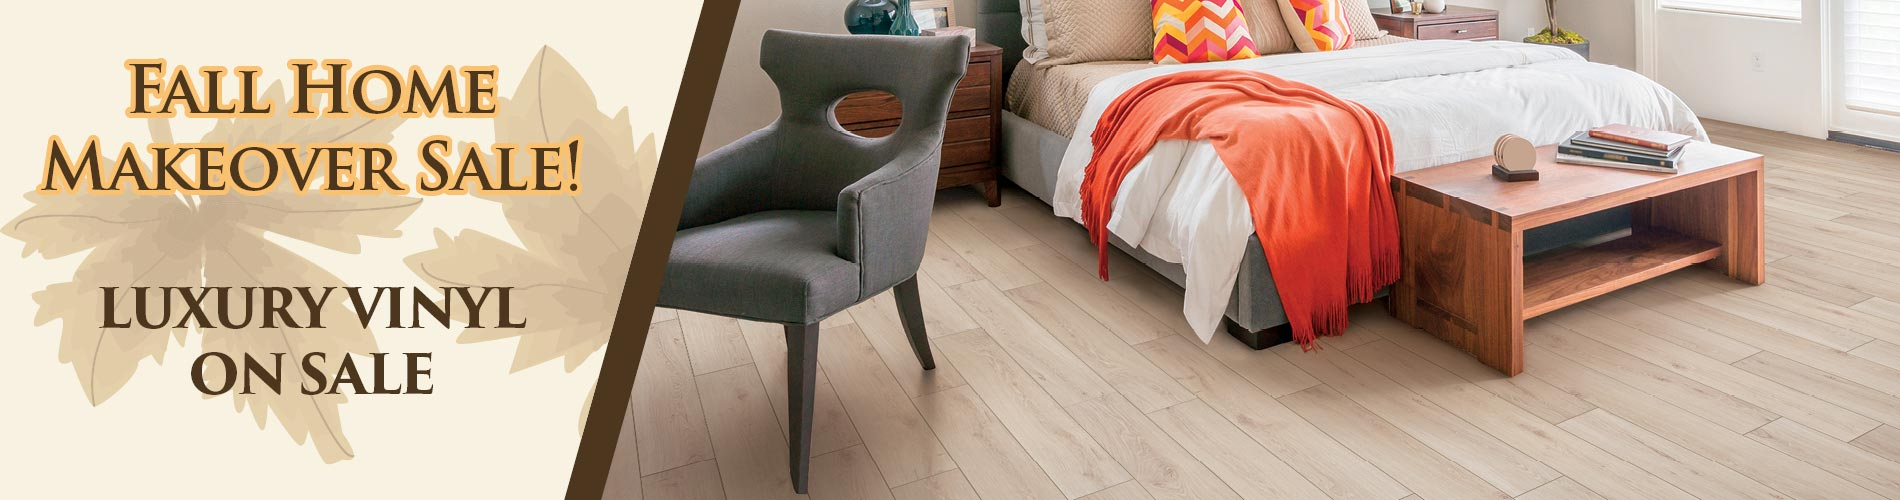 Save on Luxury Vinyl flooring during our sale